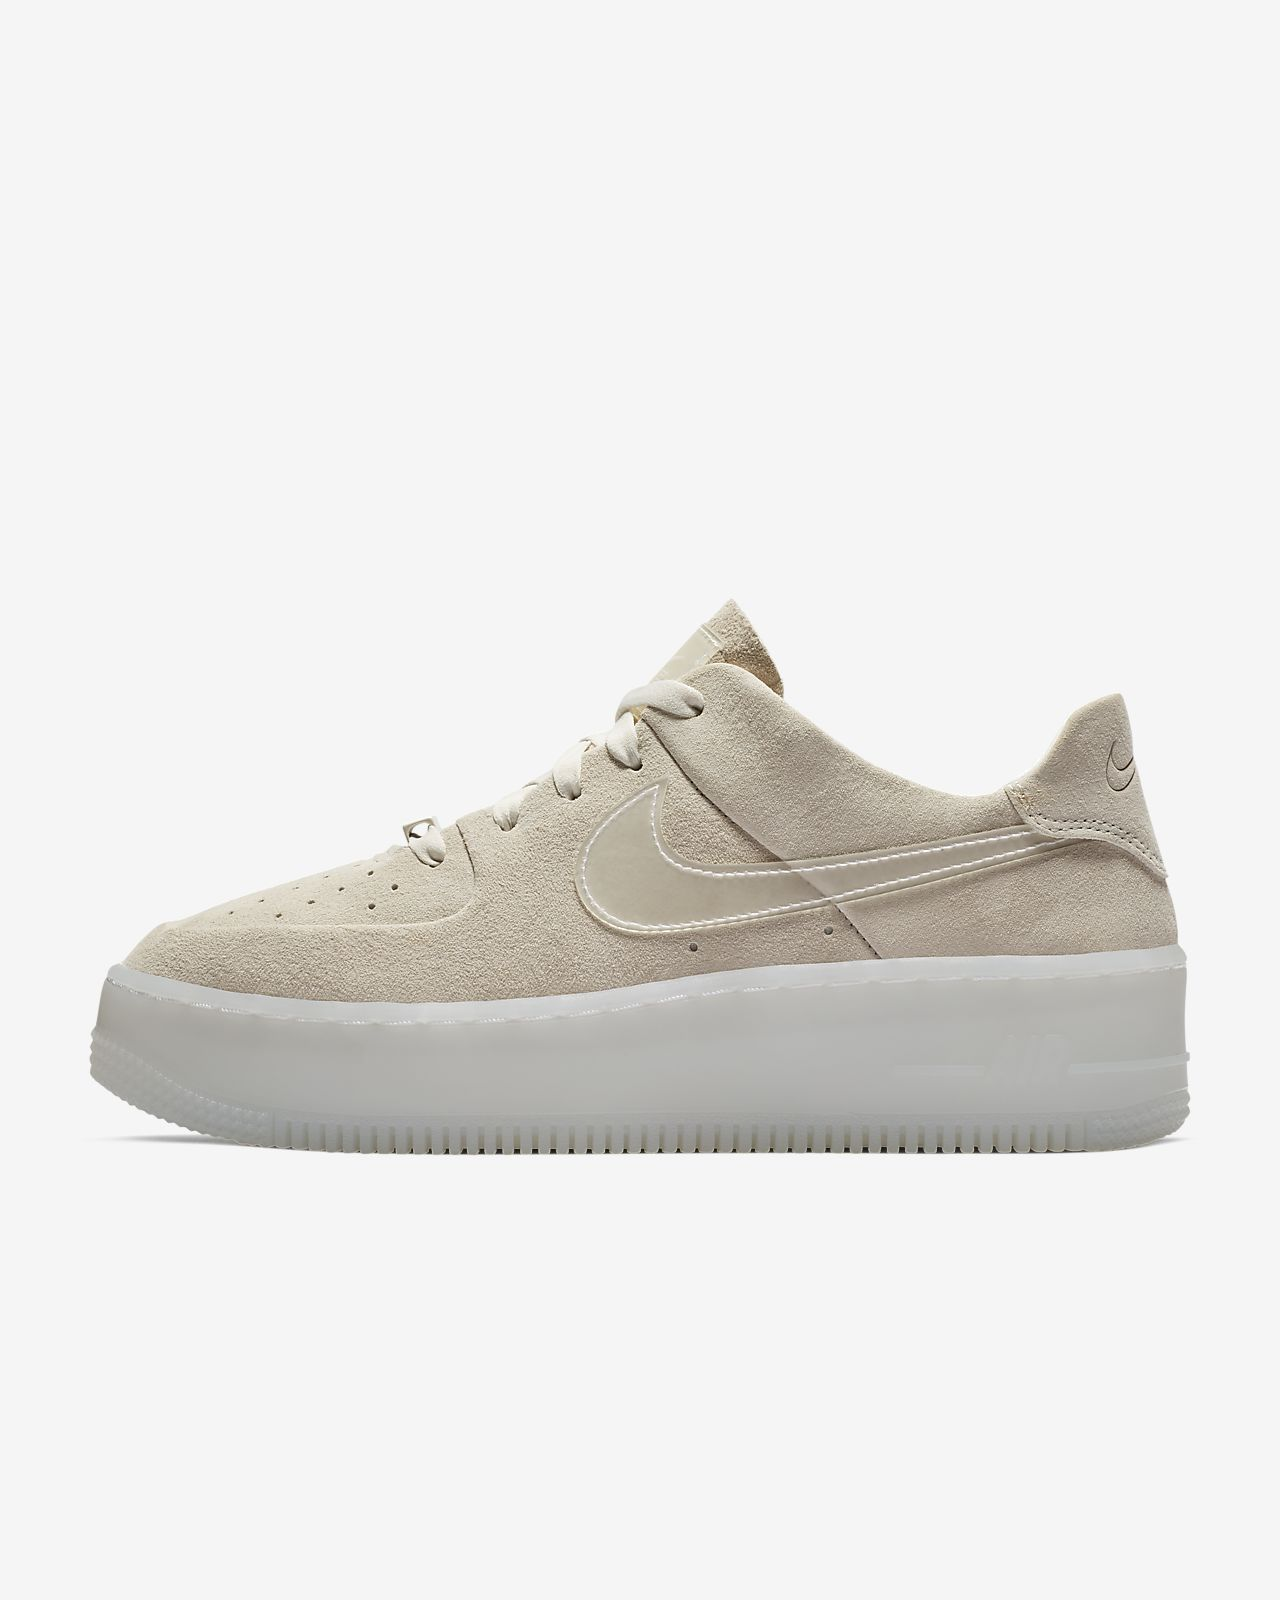 6c59e2cf81b Nike Air Force 1 Sage Low LX Damesschoen. Nike.com NL